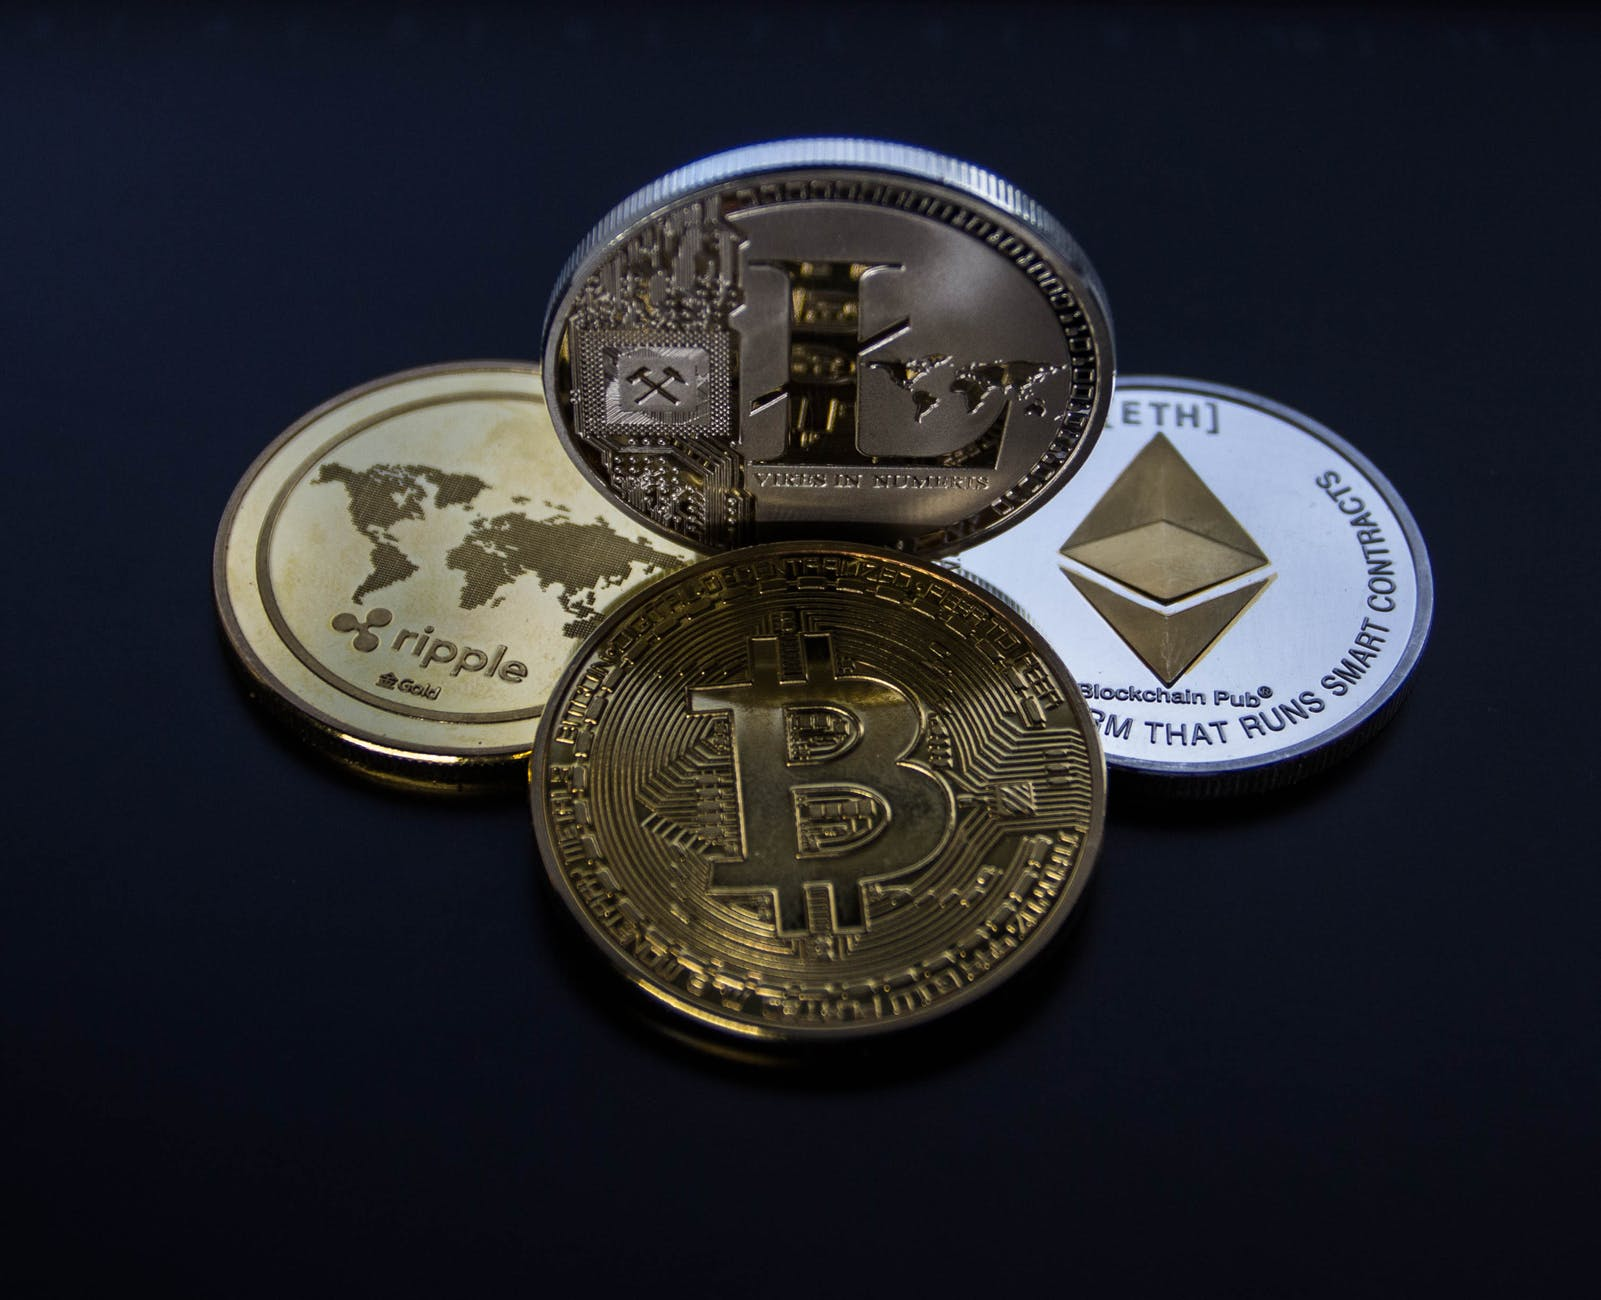 If you are just starting trading cryptocurrency, it might make sense to start with some of the more well known currencies.